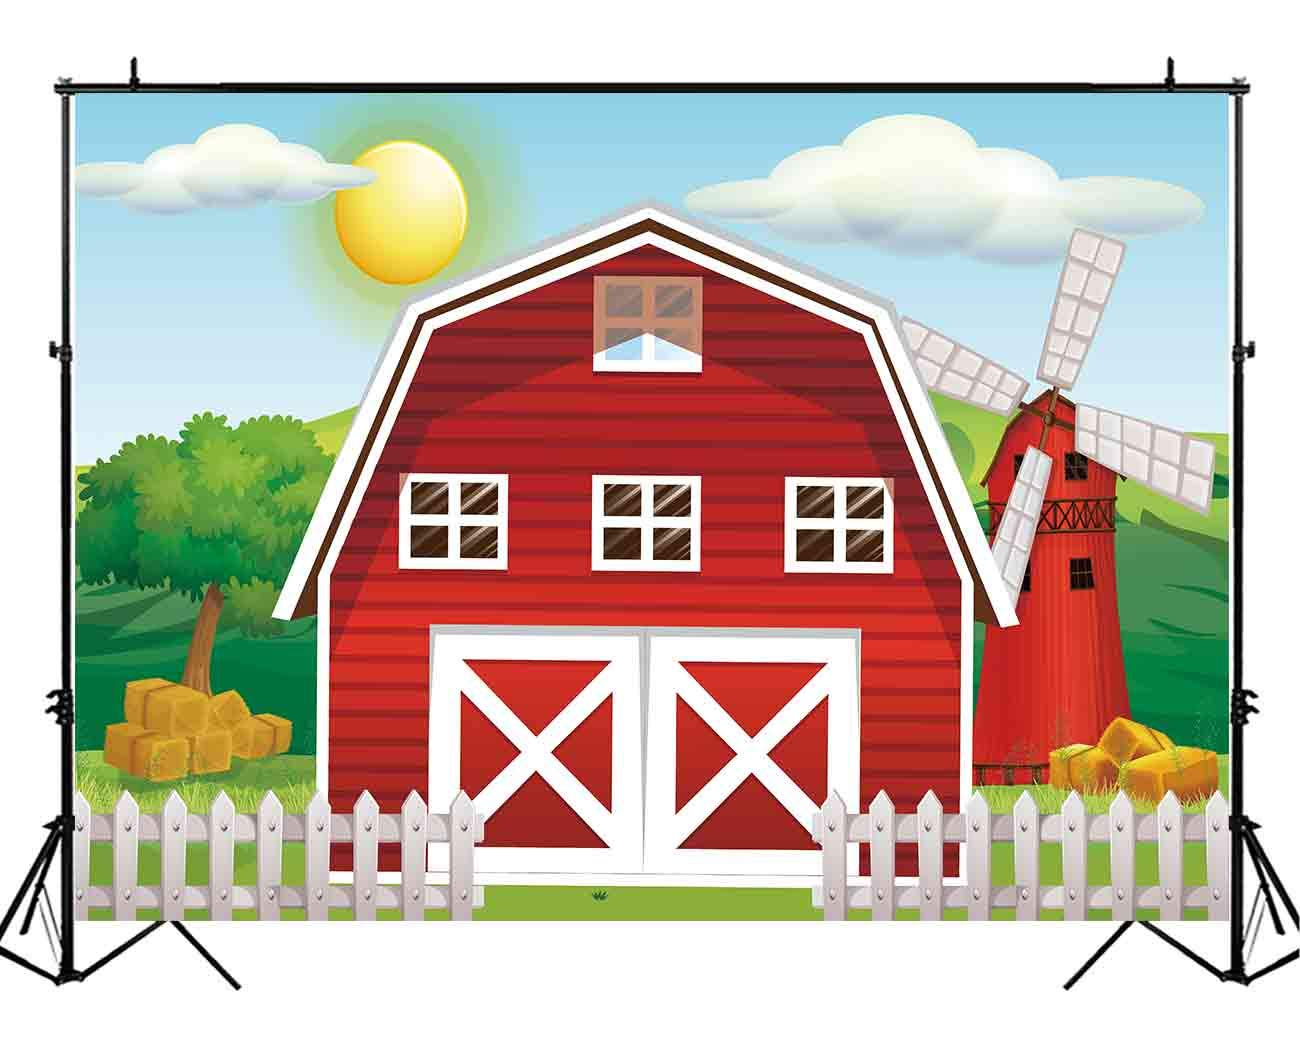 Funnytree 7x5ft Durable Fabric Cartoon Red Farm Animals Party Backdrop No Wrinkles Children Birthday Background For Photography Decorations Photobooth